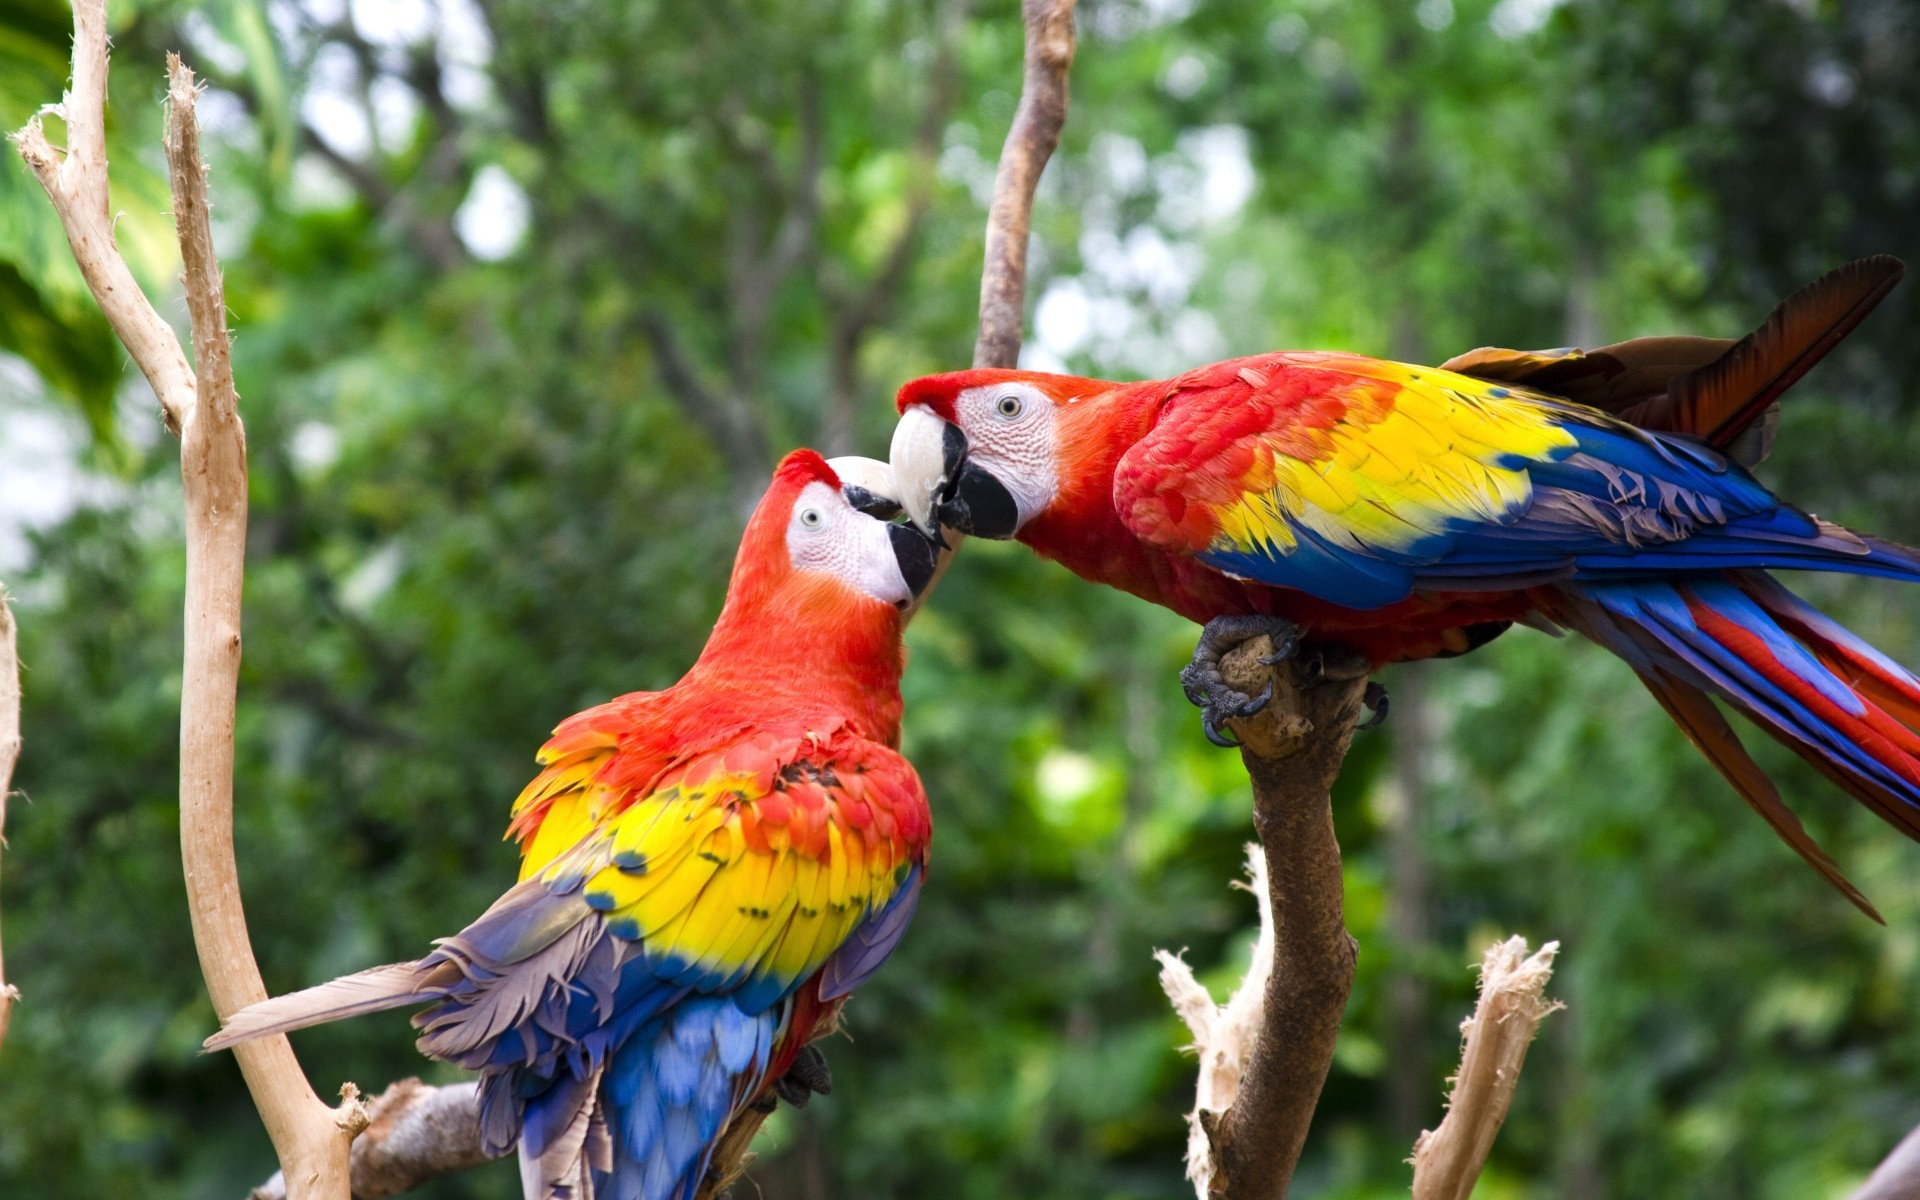 Free Download 55 Cute Love Bird Colorful Parrot Hd Wallpapers Download 1920x1200 For Your Desktop Mobile Tablet Explore 30 Beautiful Wallpapers Pic Beautiful Wallpapers Pic Pic Of Beautiful Wallpaper